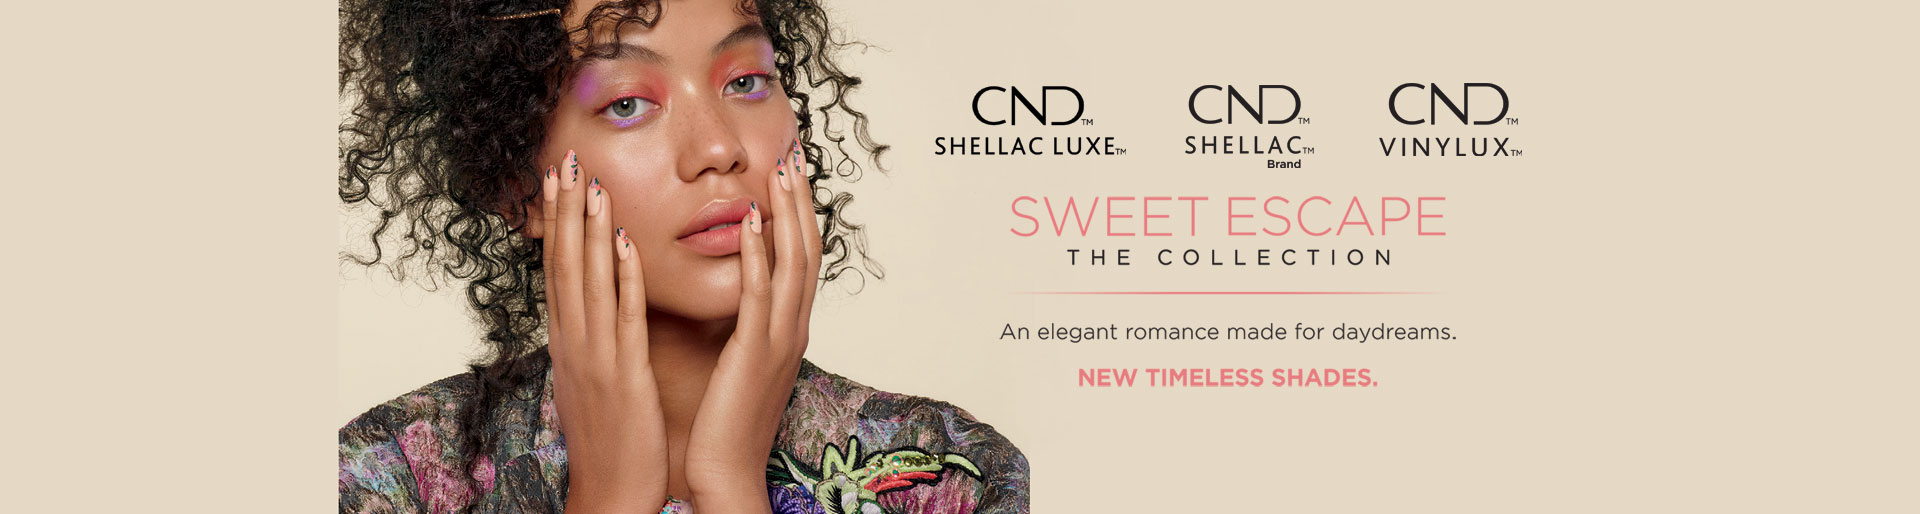 CND-SweetEscape-hp-banner